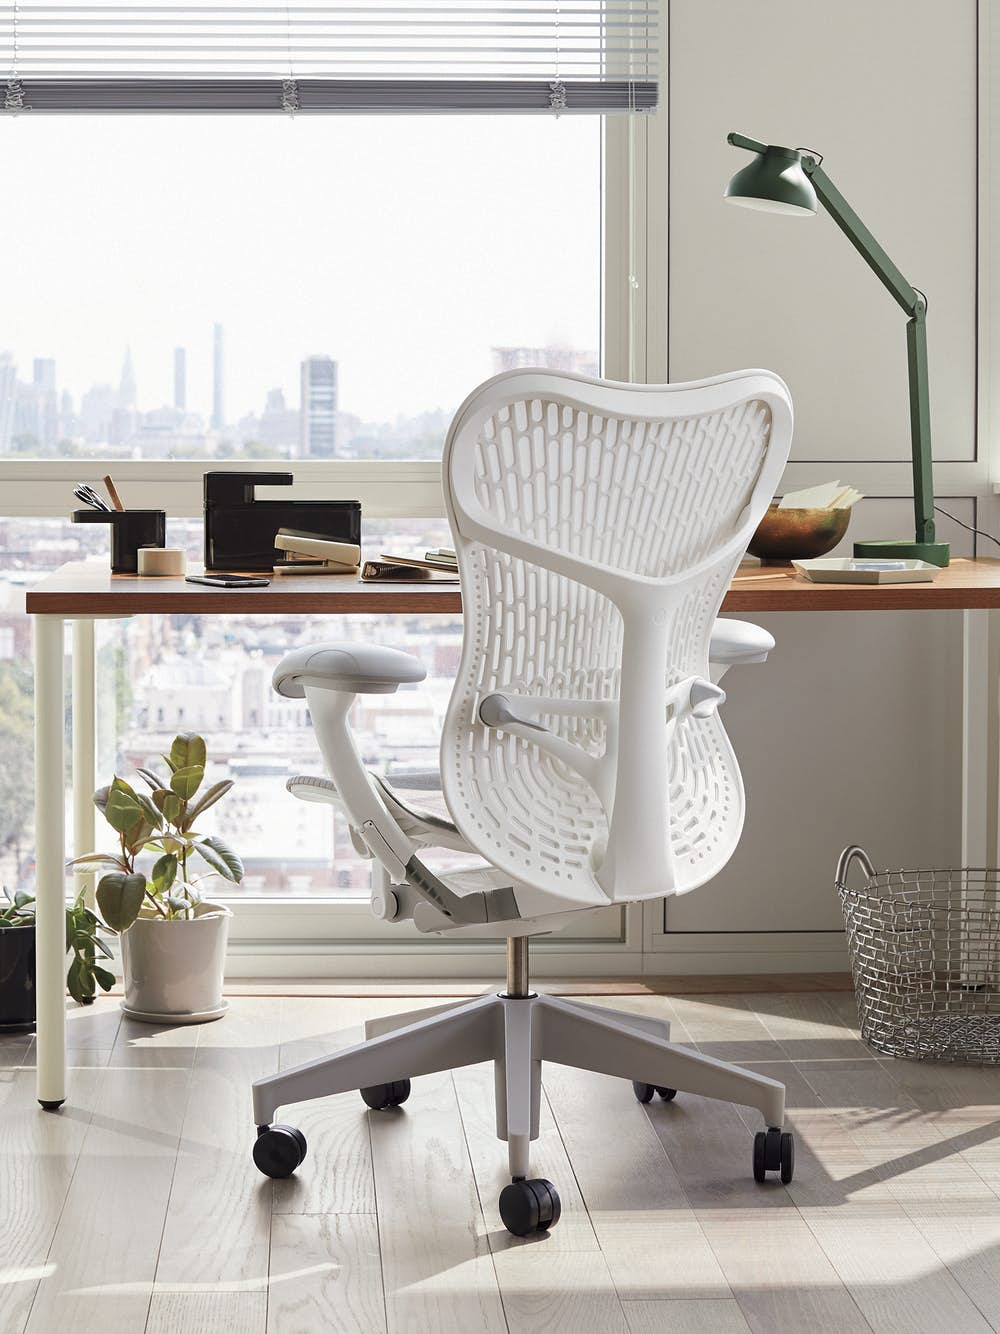 Grey and white Mirra 2 chair with brown and white OE1 Rectangular Table in a home office setting.